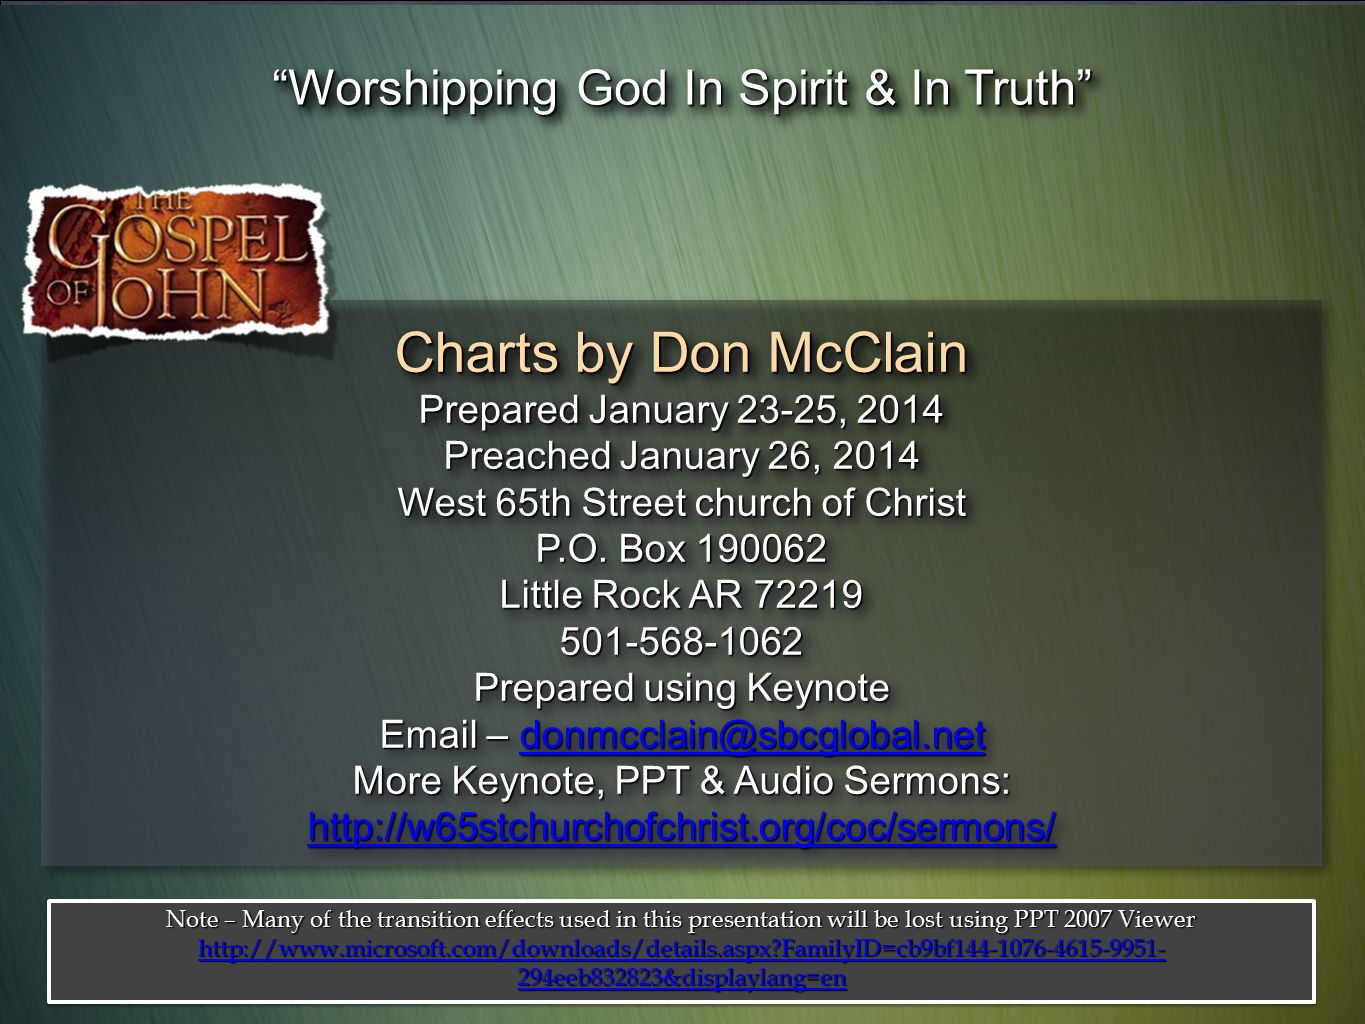 Charts by Don McClain Worshipping God In Spirit & In Truth